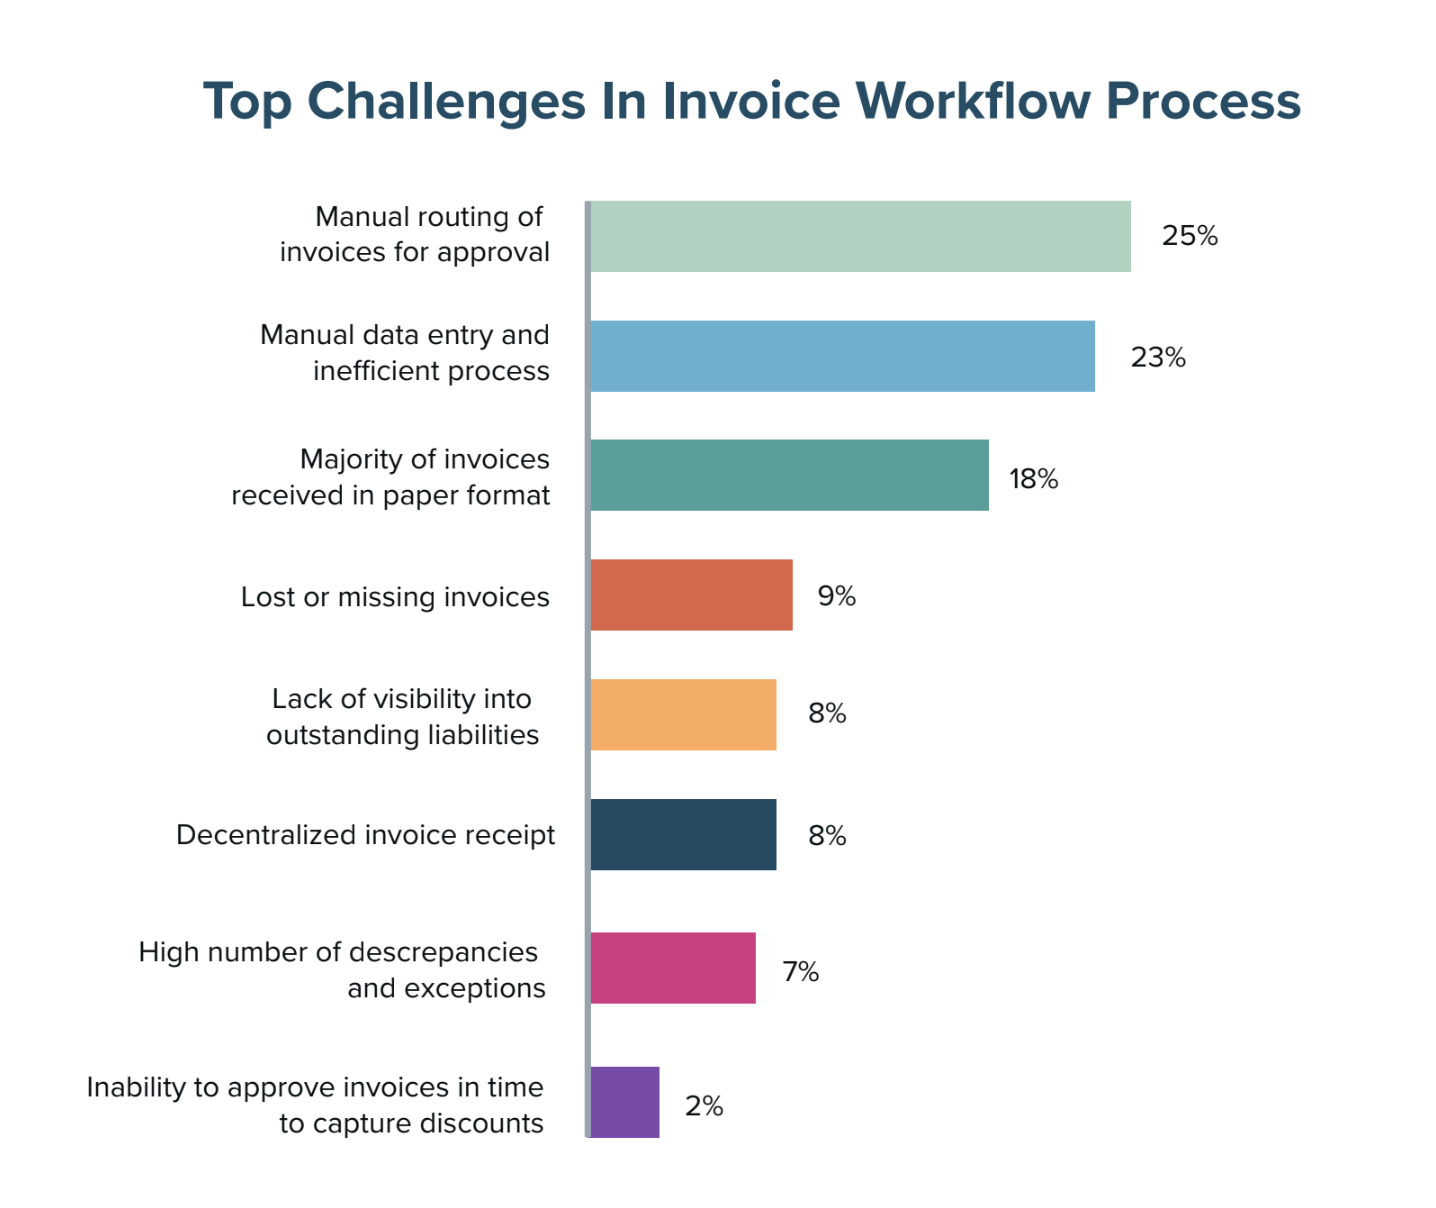 Top Challenges in Invoice Workflow Process